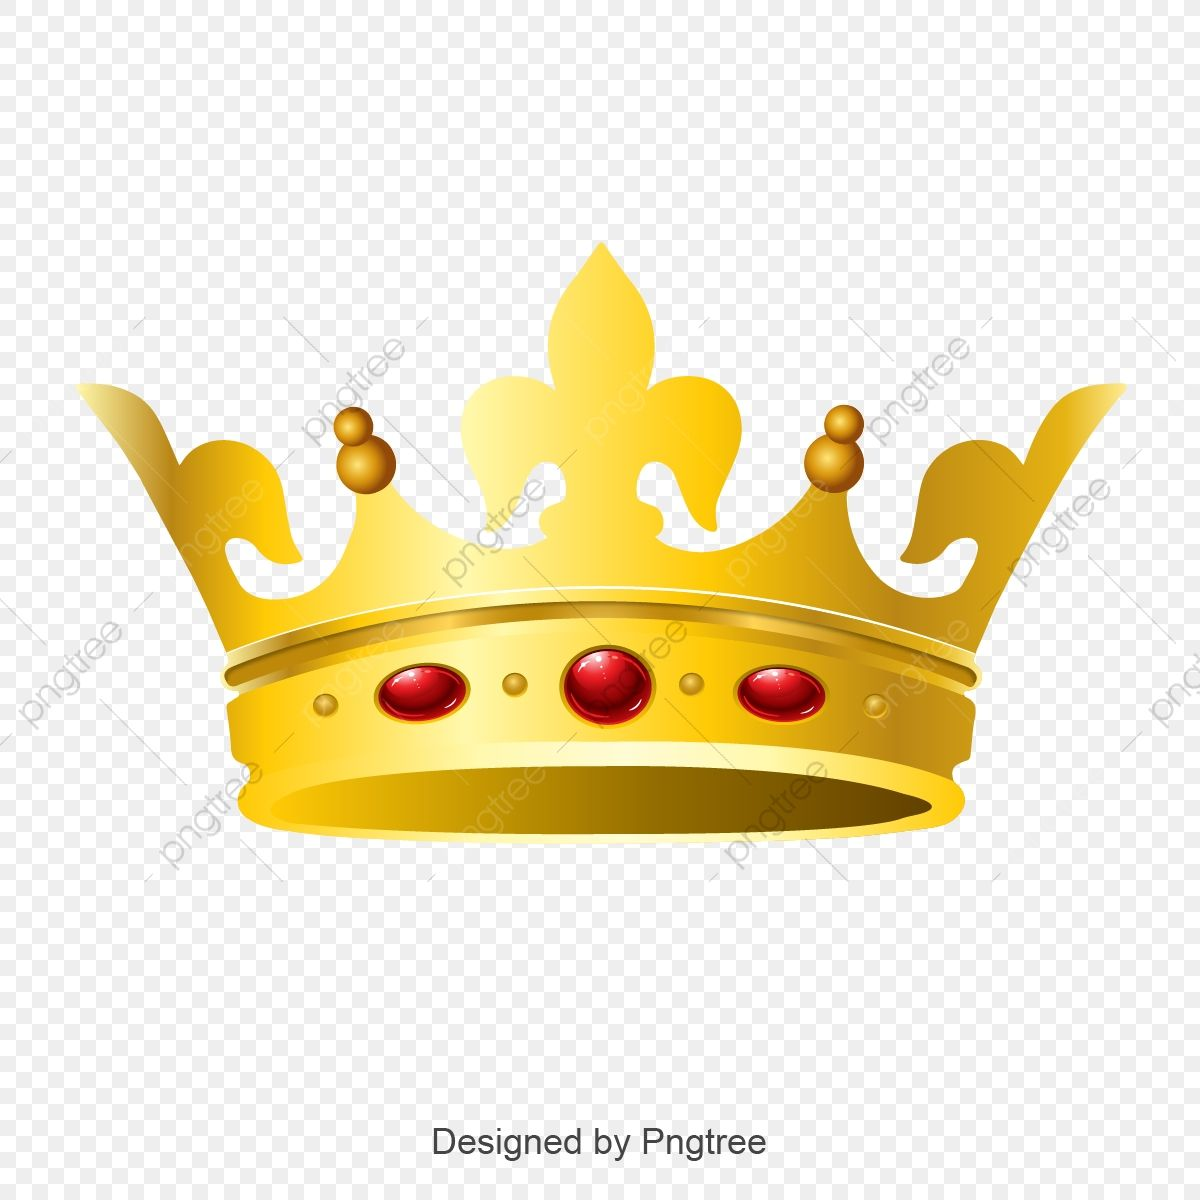 Download This King S Golden Crown Design Material Gold Crown Authority Blinking Transparent Png Or Ve Crown Design Blue Background Images Vector Logo Design